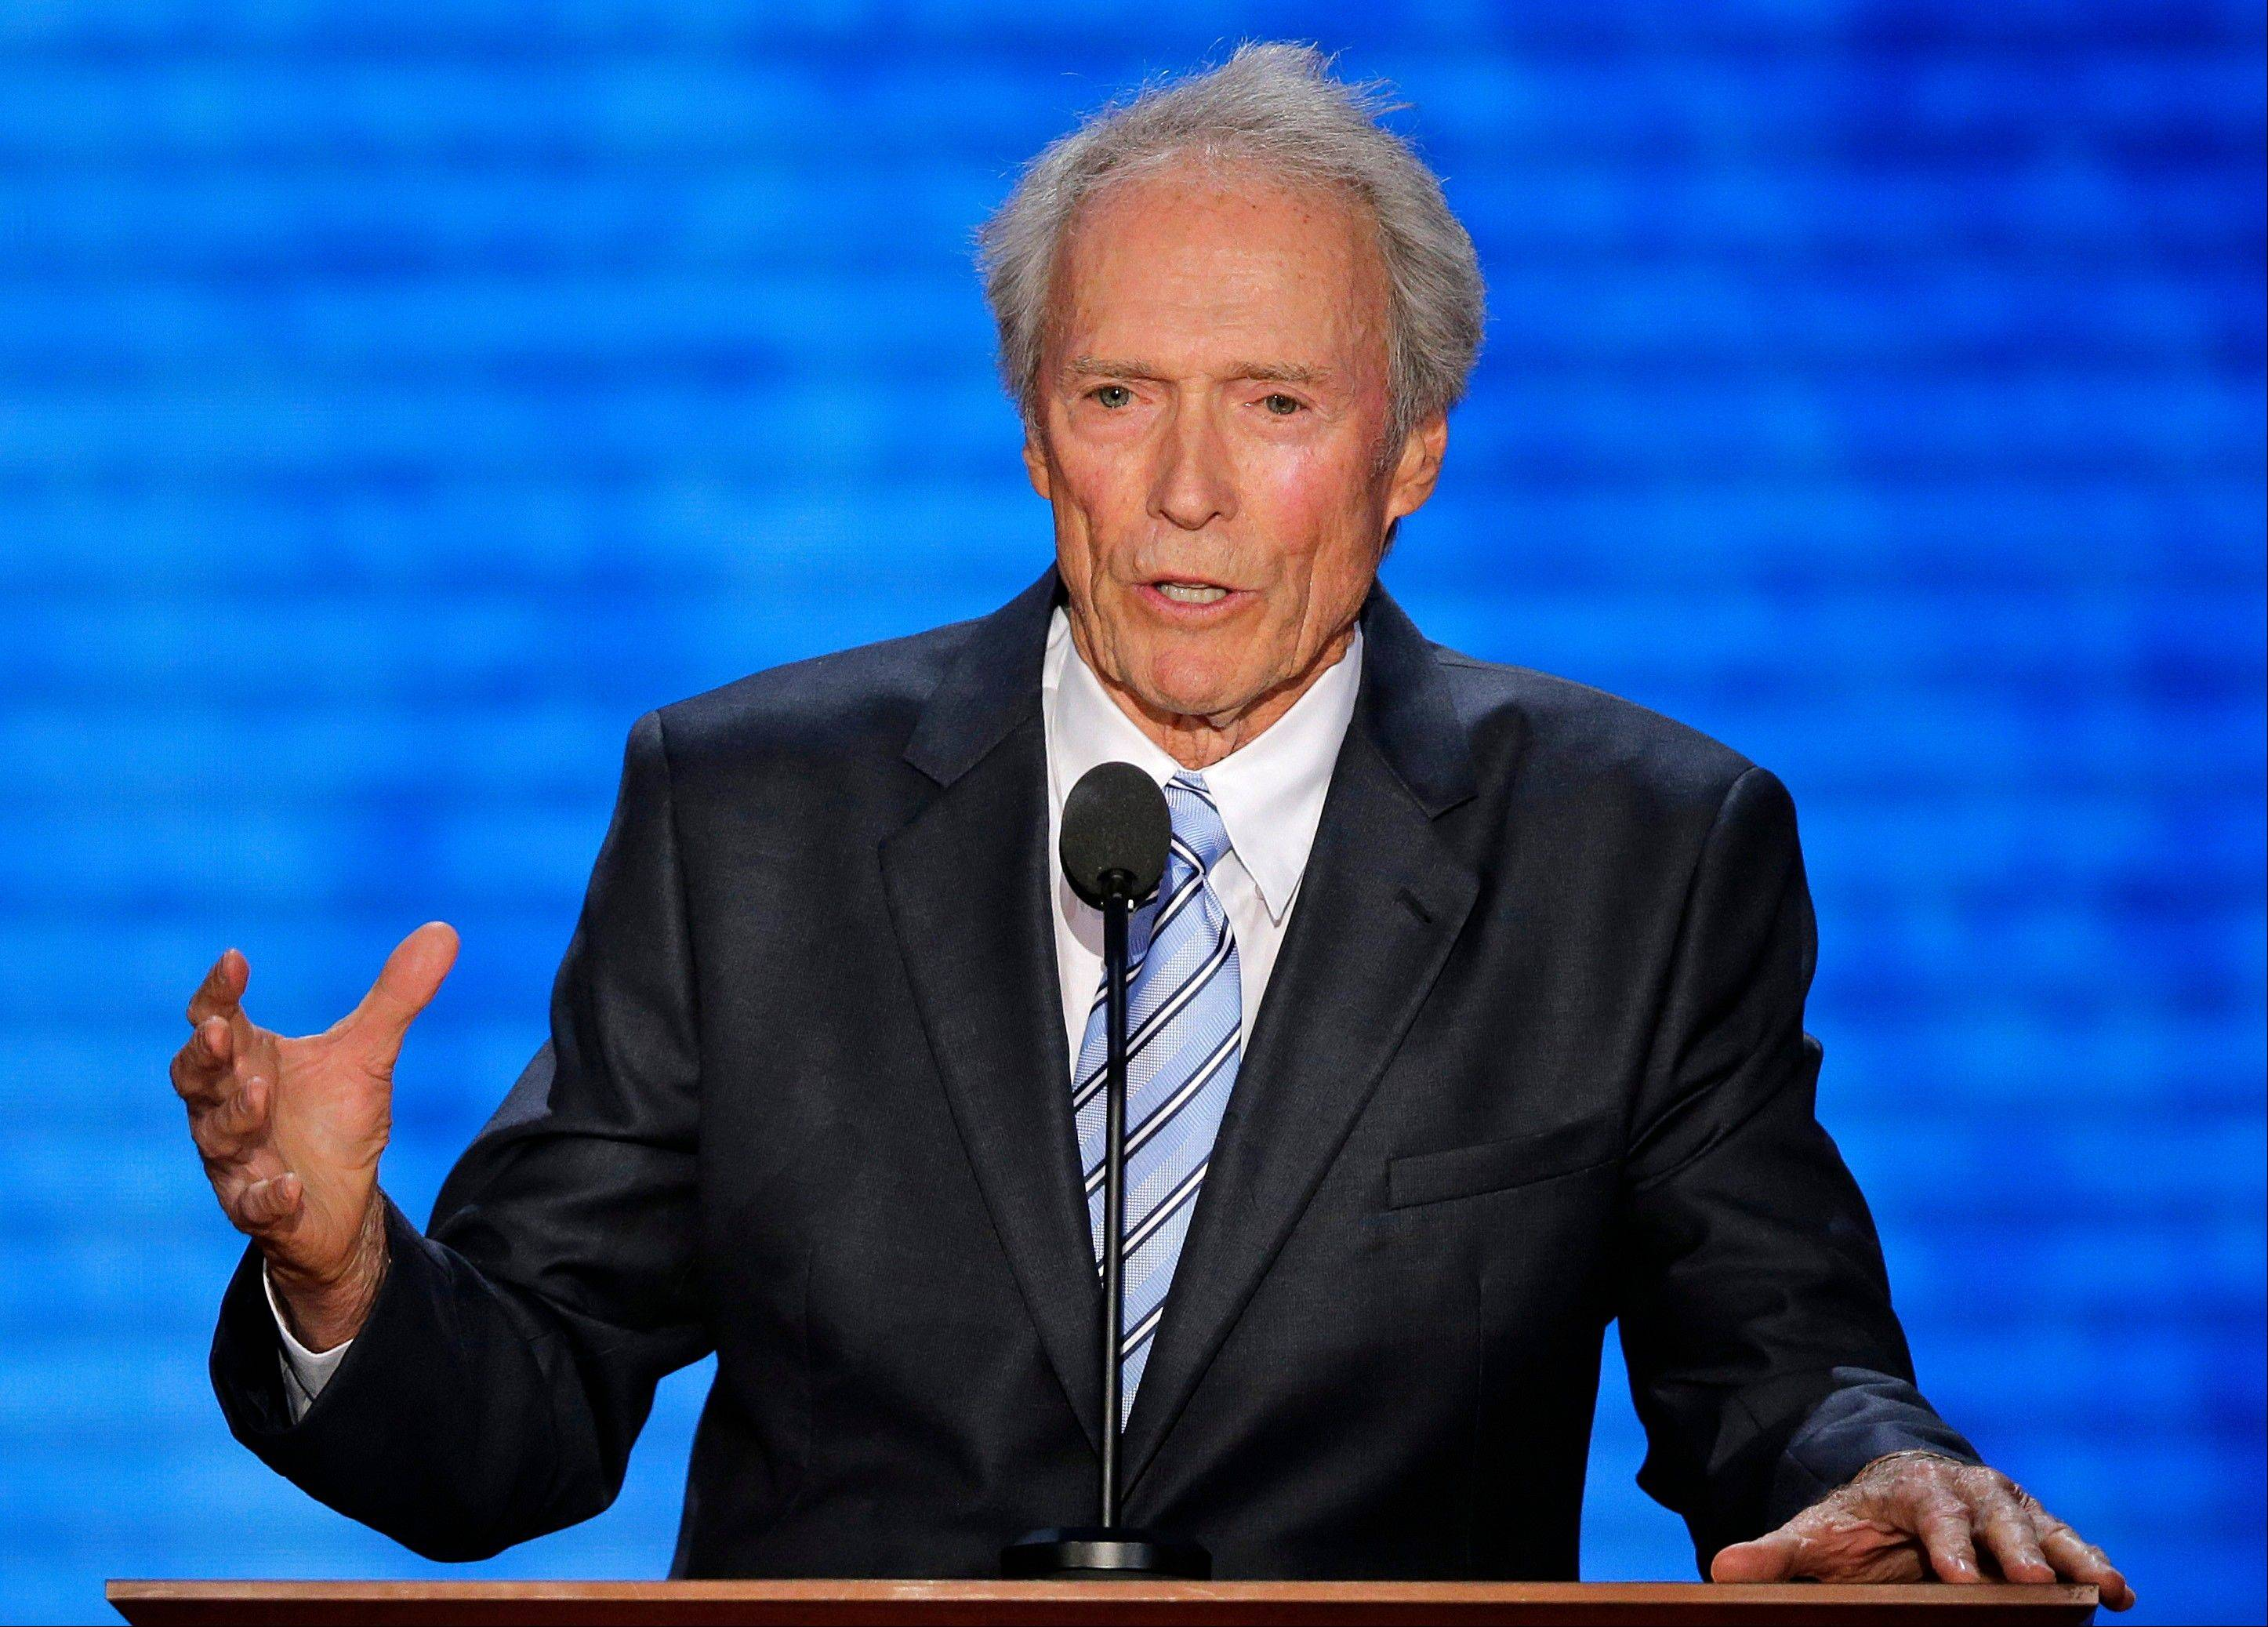 Actor Clint Eastwood addresses the Republican National Convention in Tampa, Fla., Thursday.